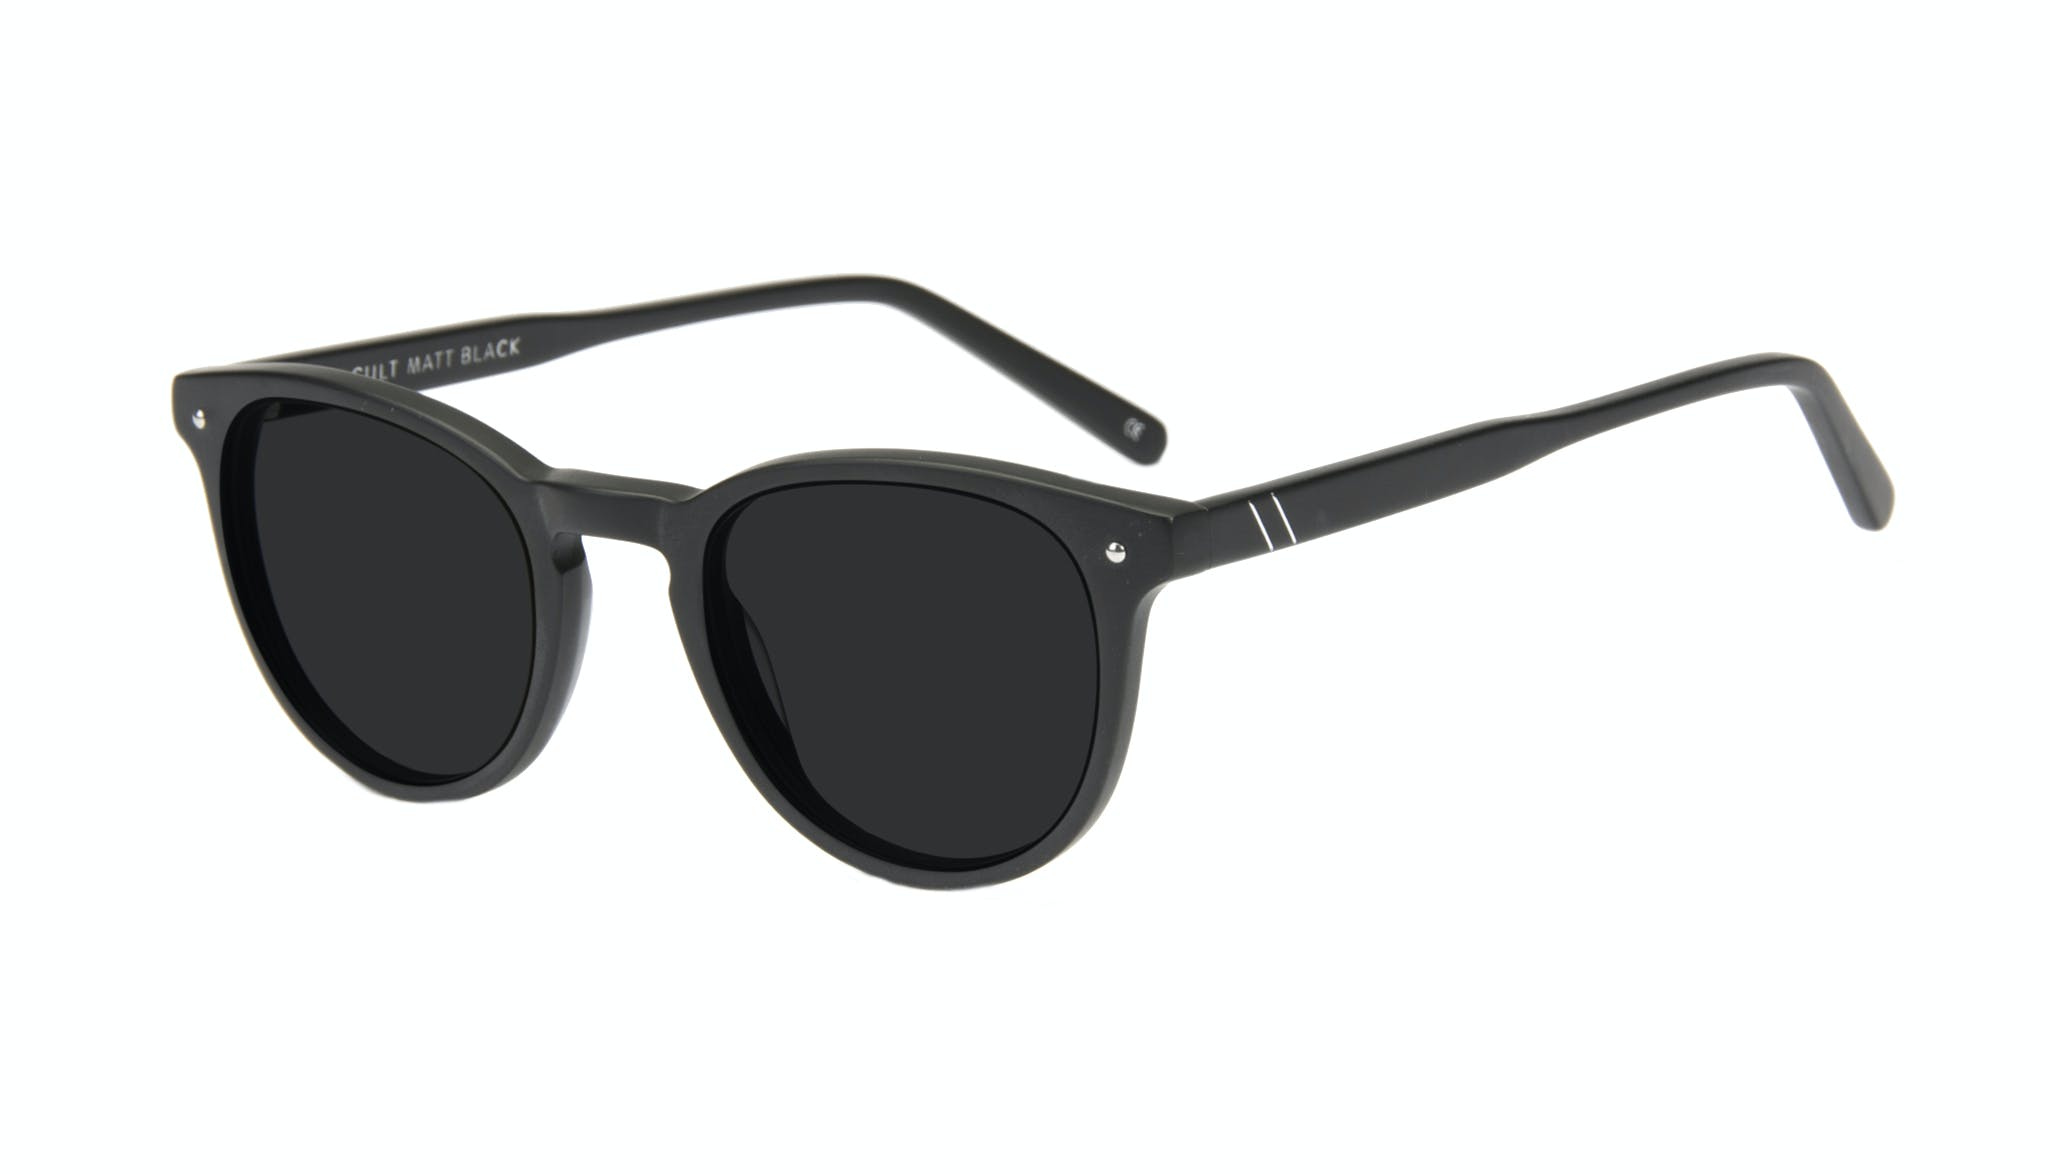 Affordable Fashion Glasses Round Sunglasses Men Cult Matte Black Tilt